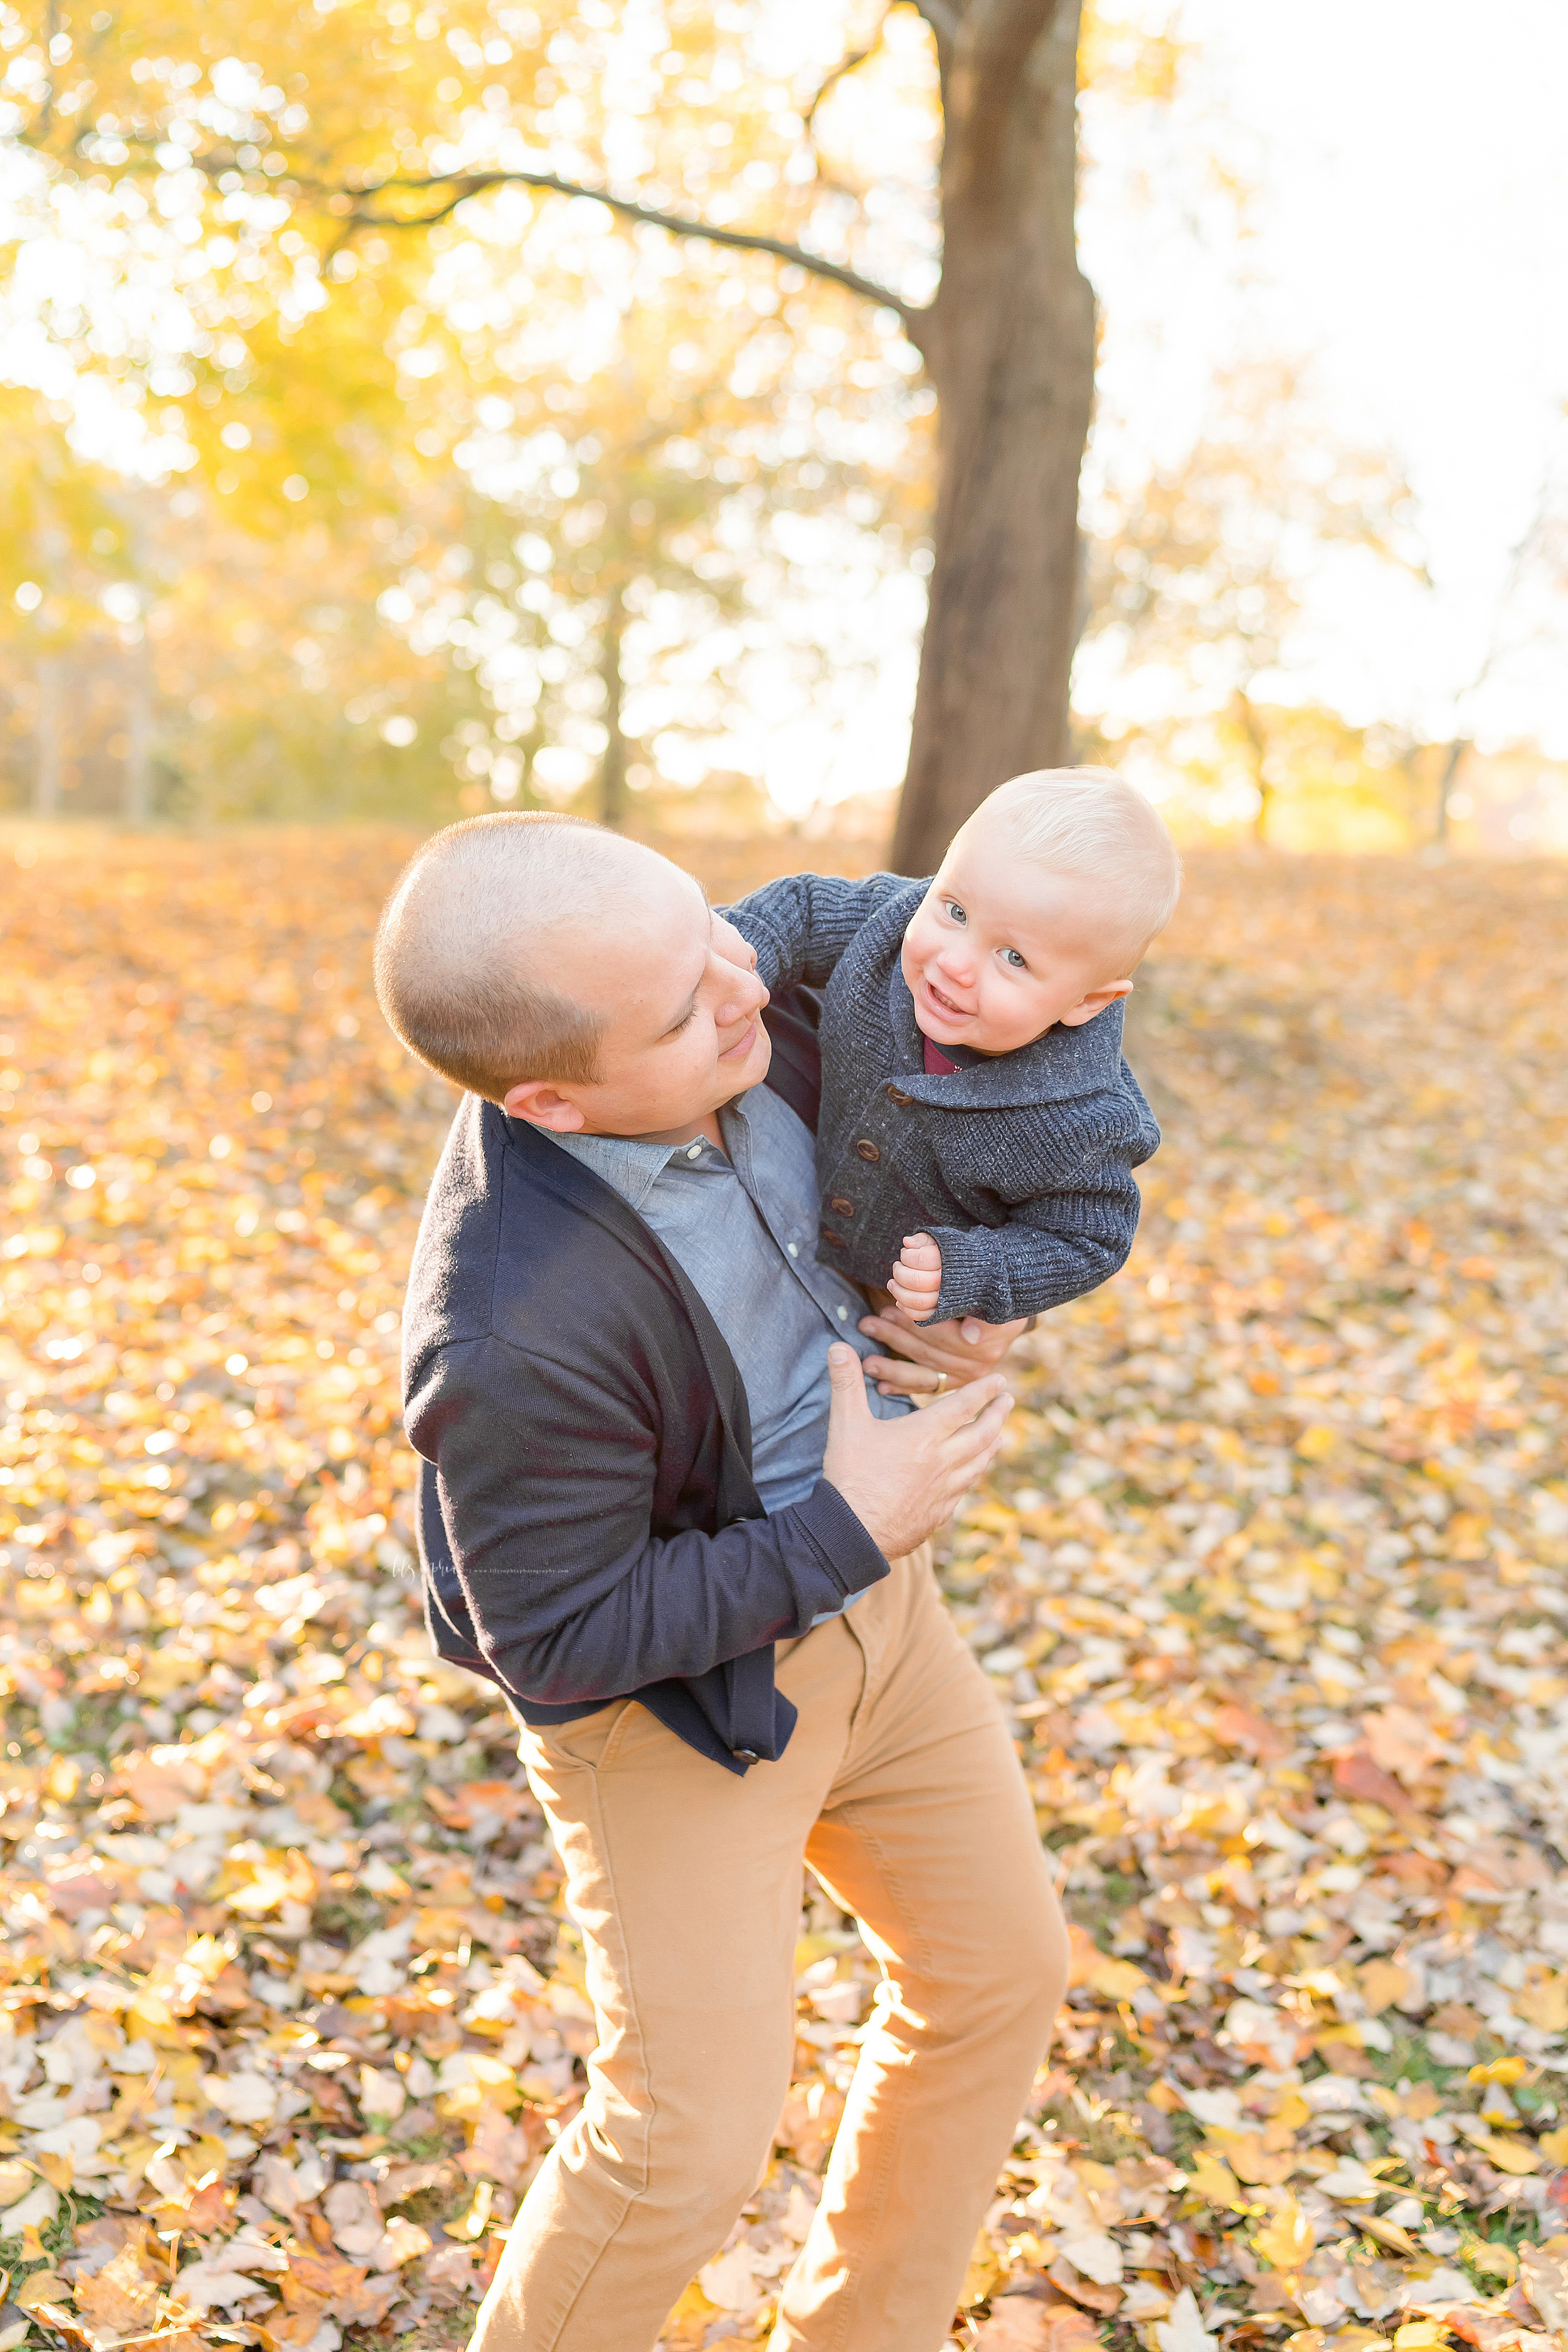 atlanta-midtown-brookhaven-decatur-lily-sophia-photography-photographer-portraits-grant-park-family-sunset-fall-outdoor-session-brothers-toddler-baby_0145.jpg